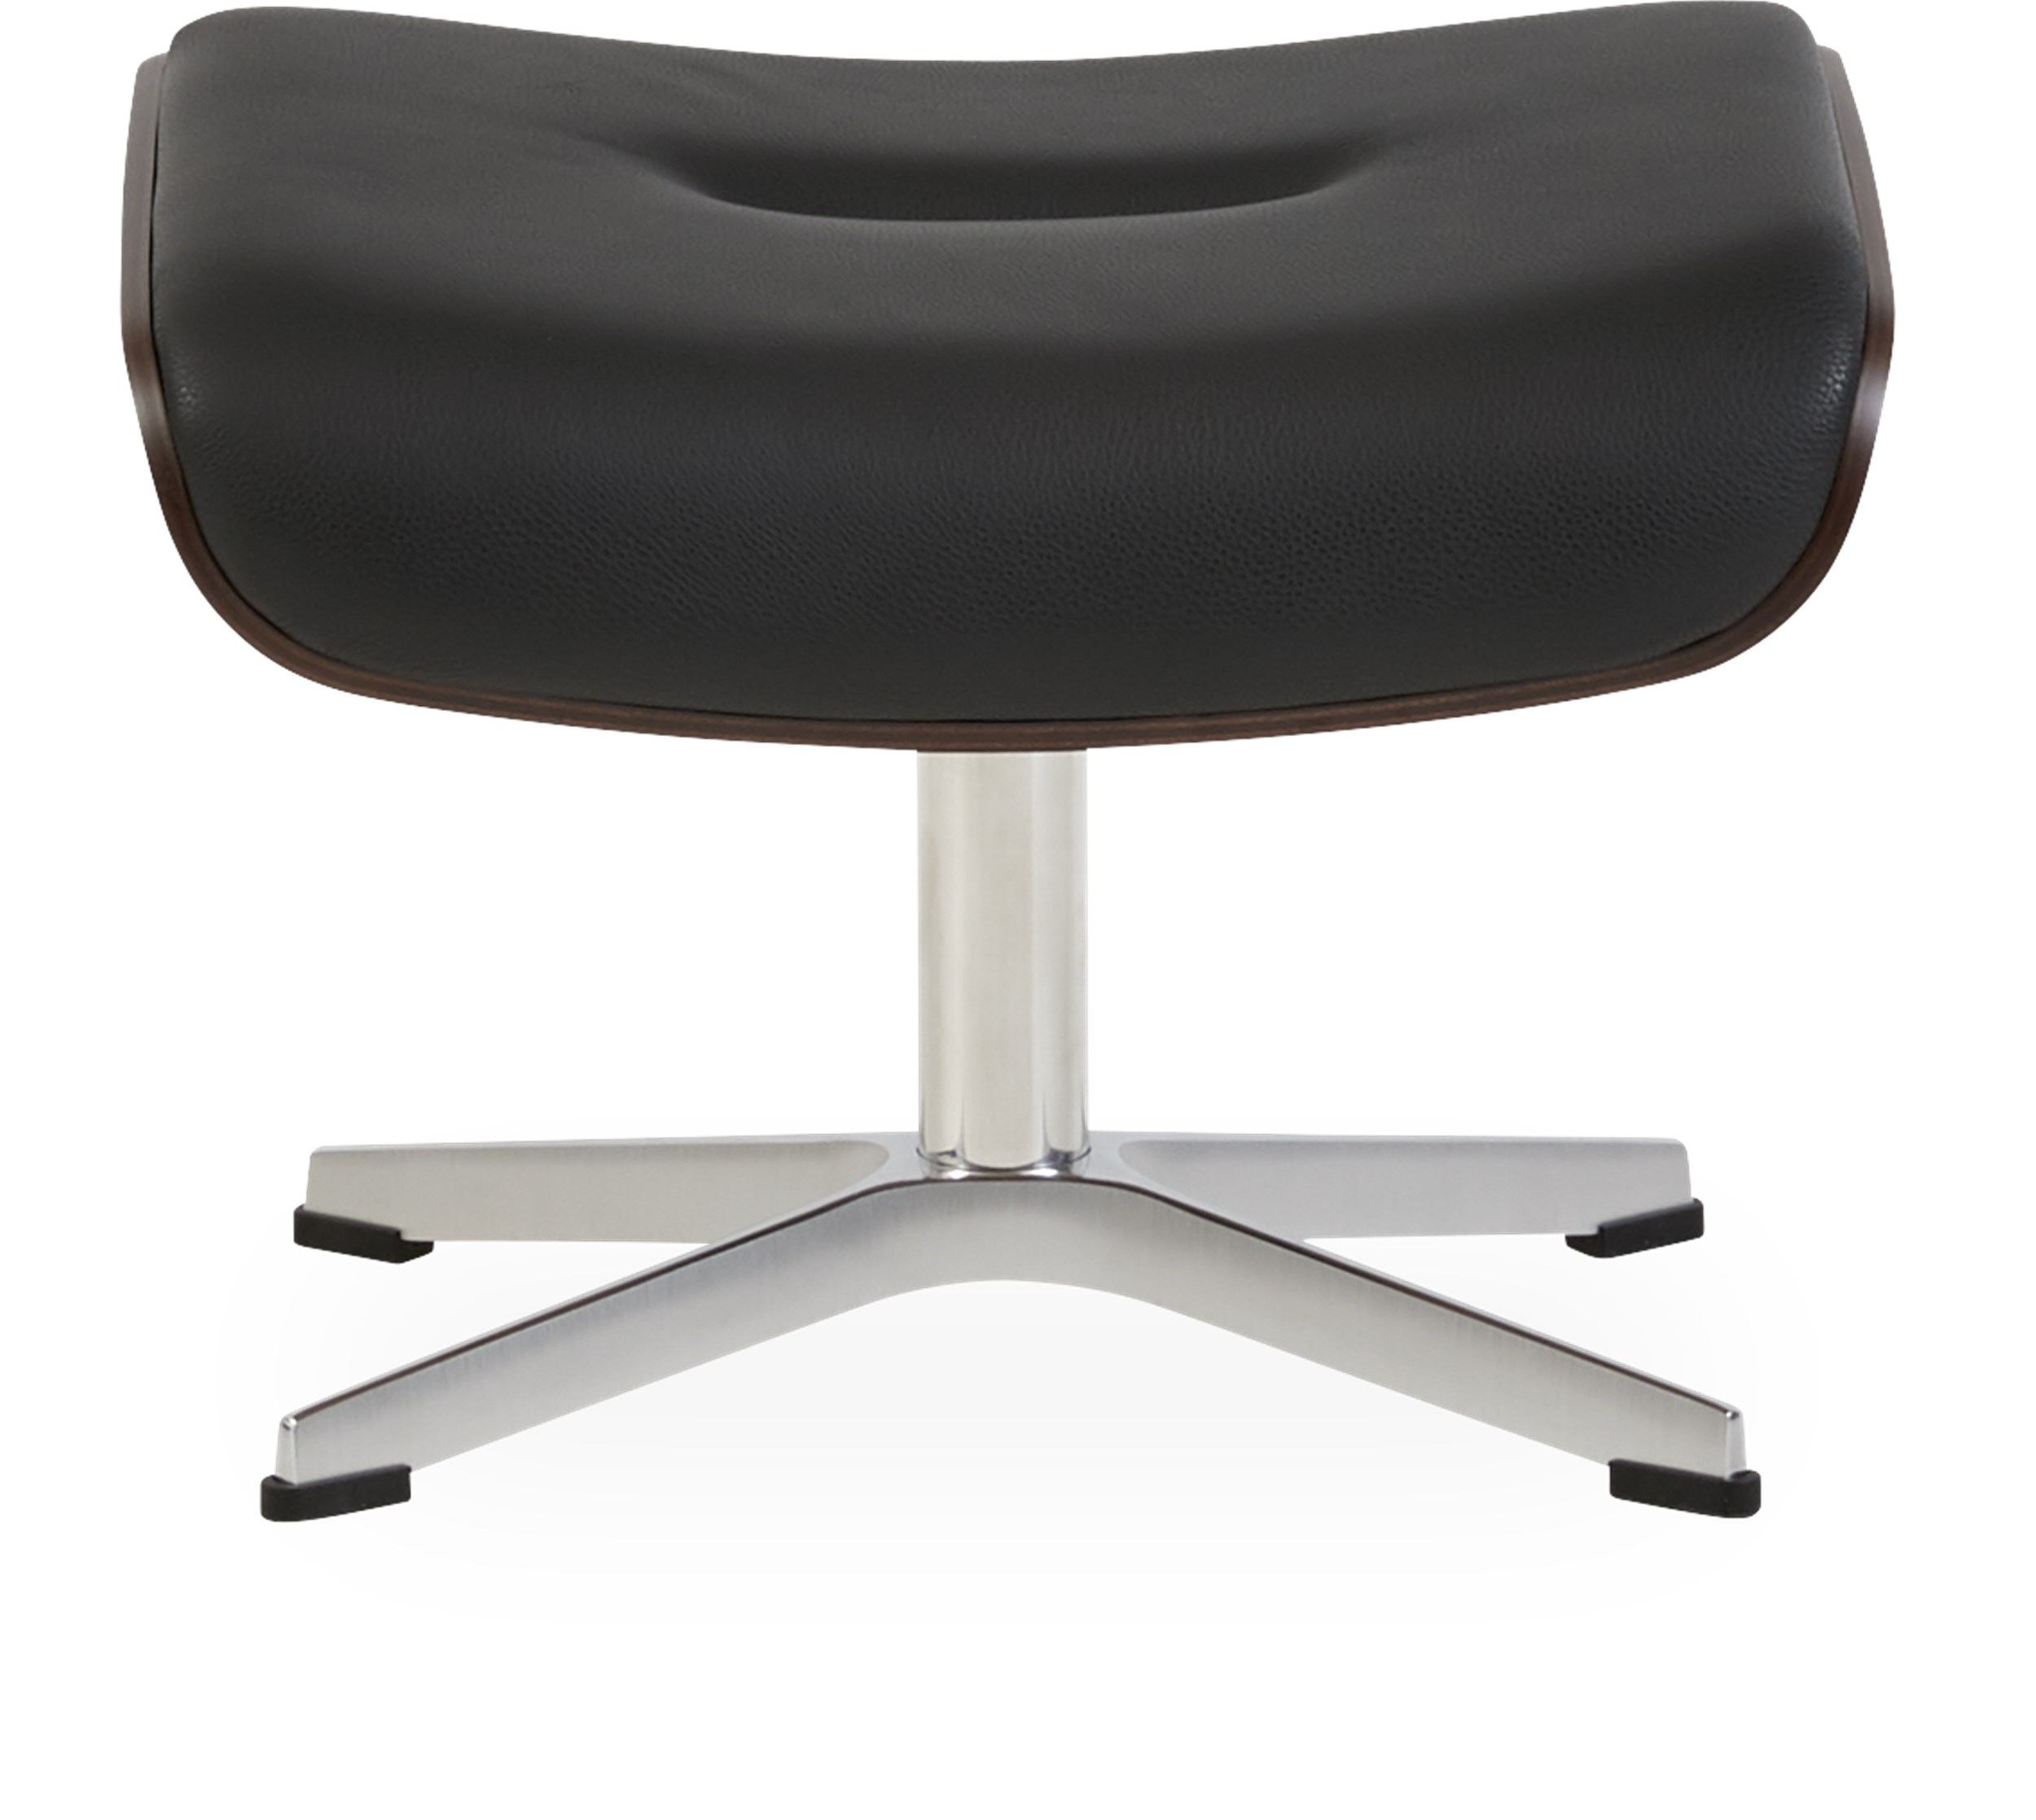 Air Fotpall - Fantasty 2514-89 black läder, sides in walnut och fot i aluminium